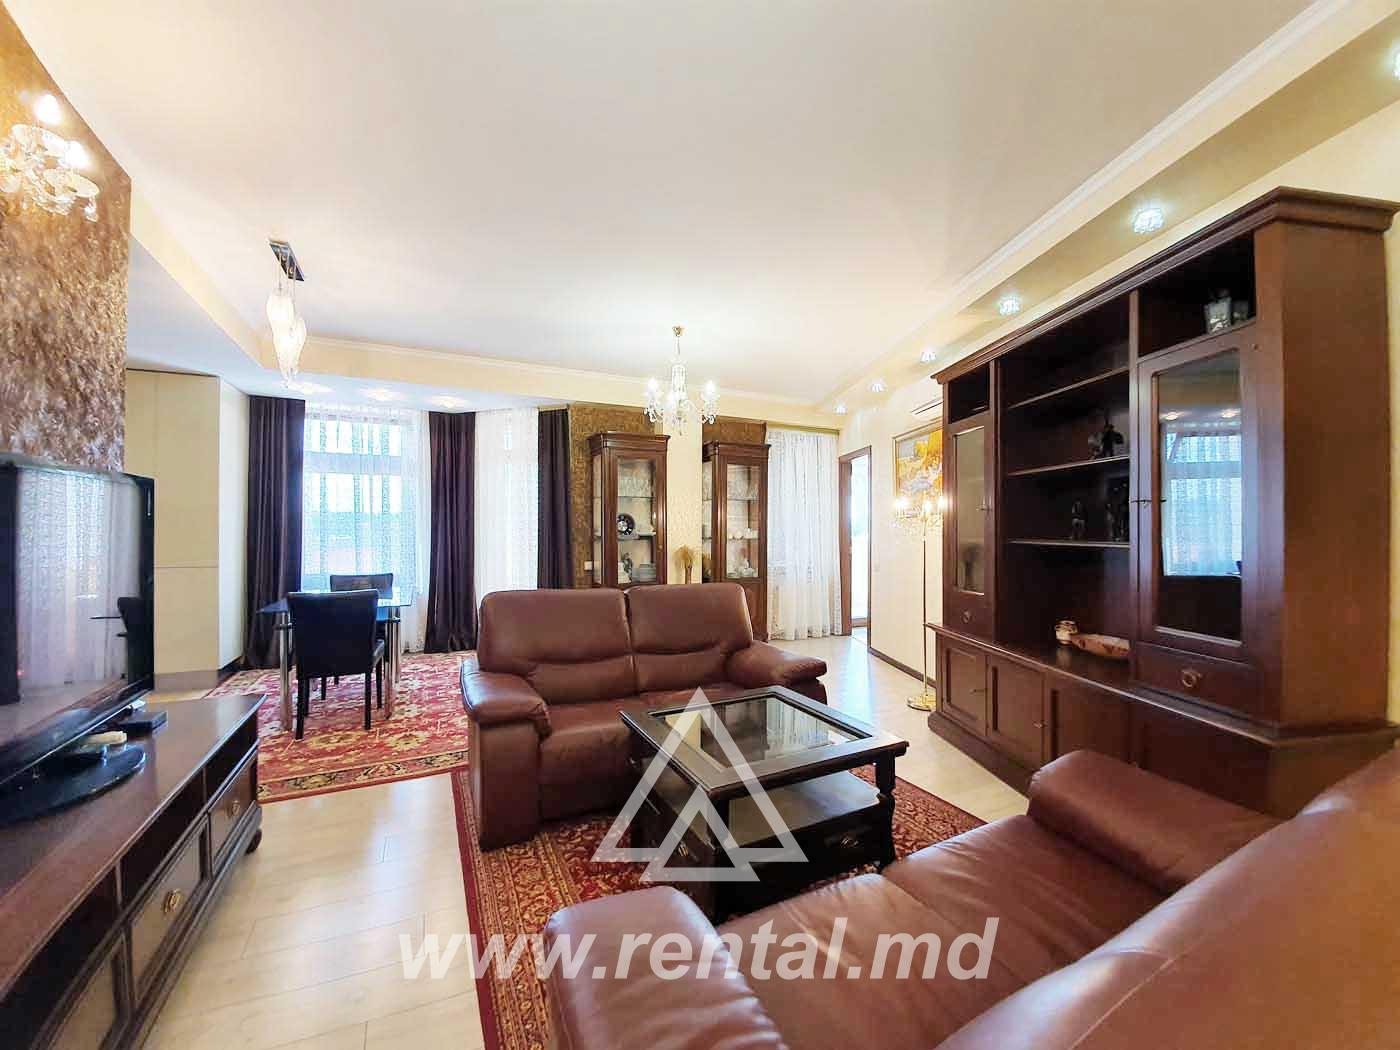 3 Rooms apartment for rent in a luxury building